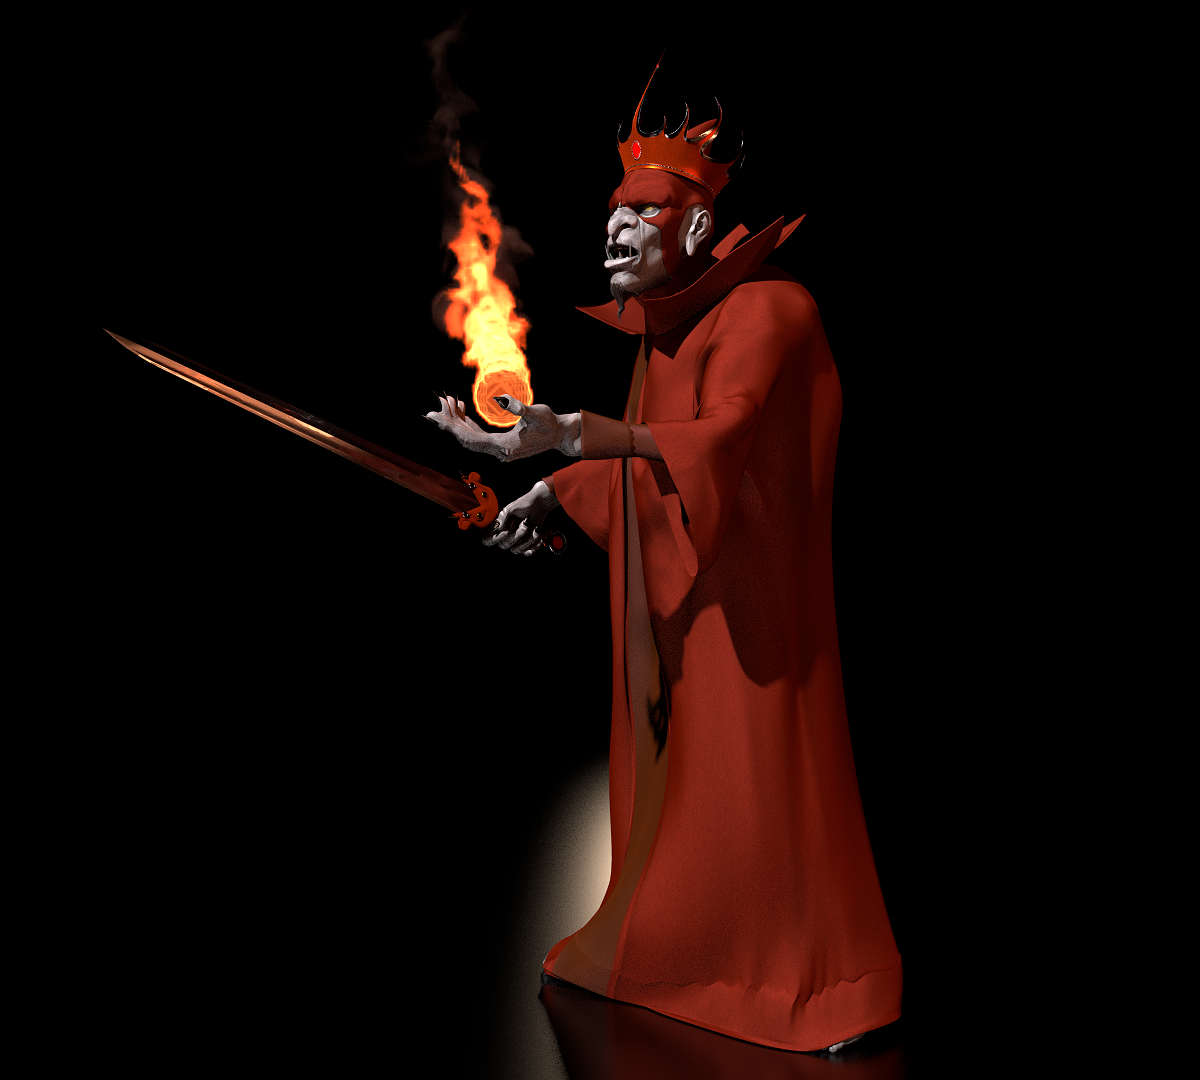 Wizard HD PNG - 119203